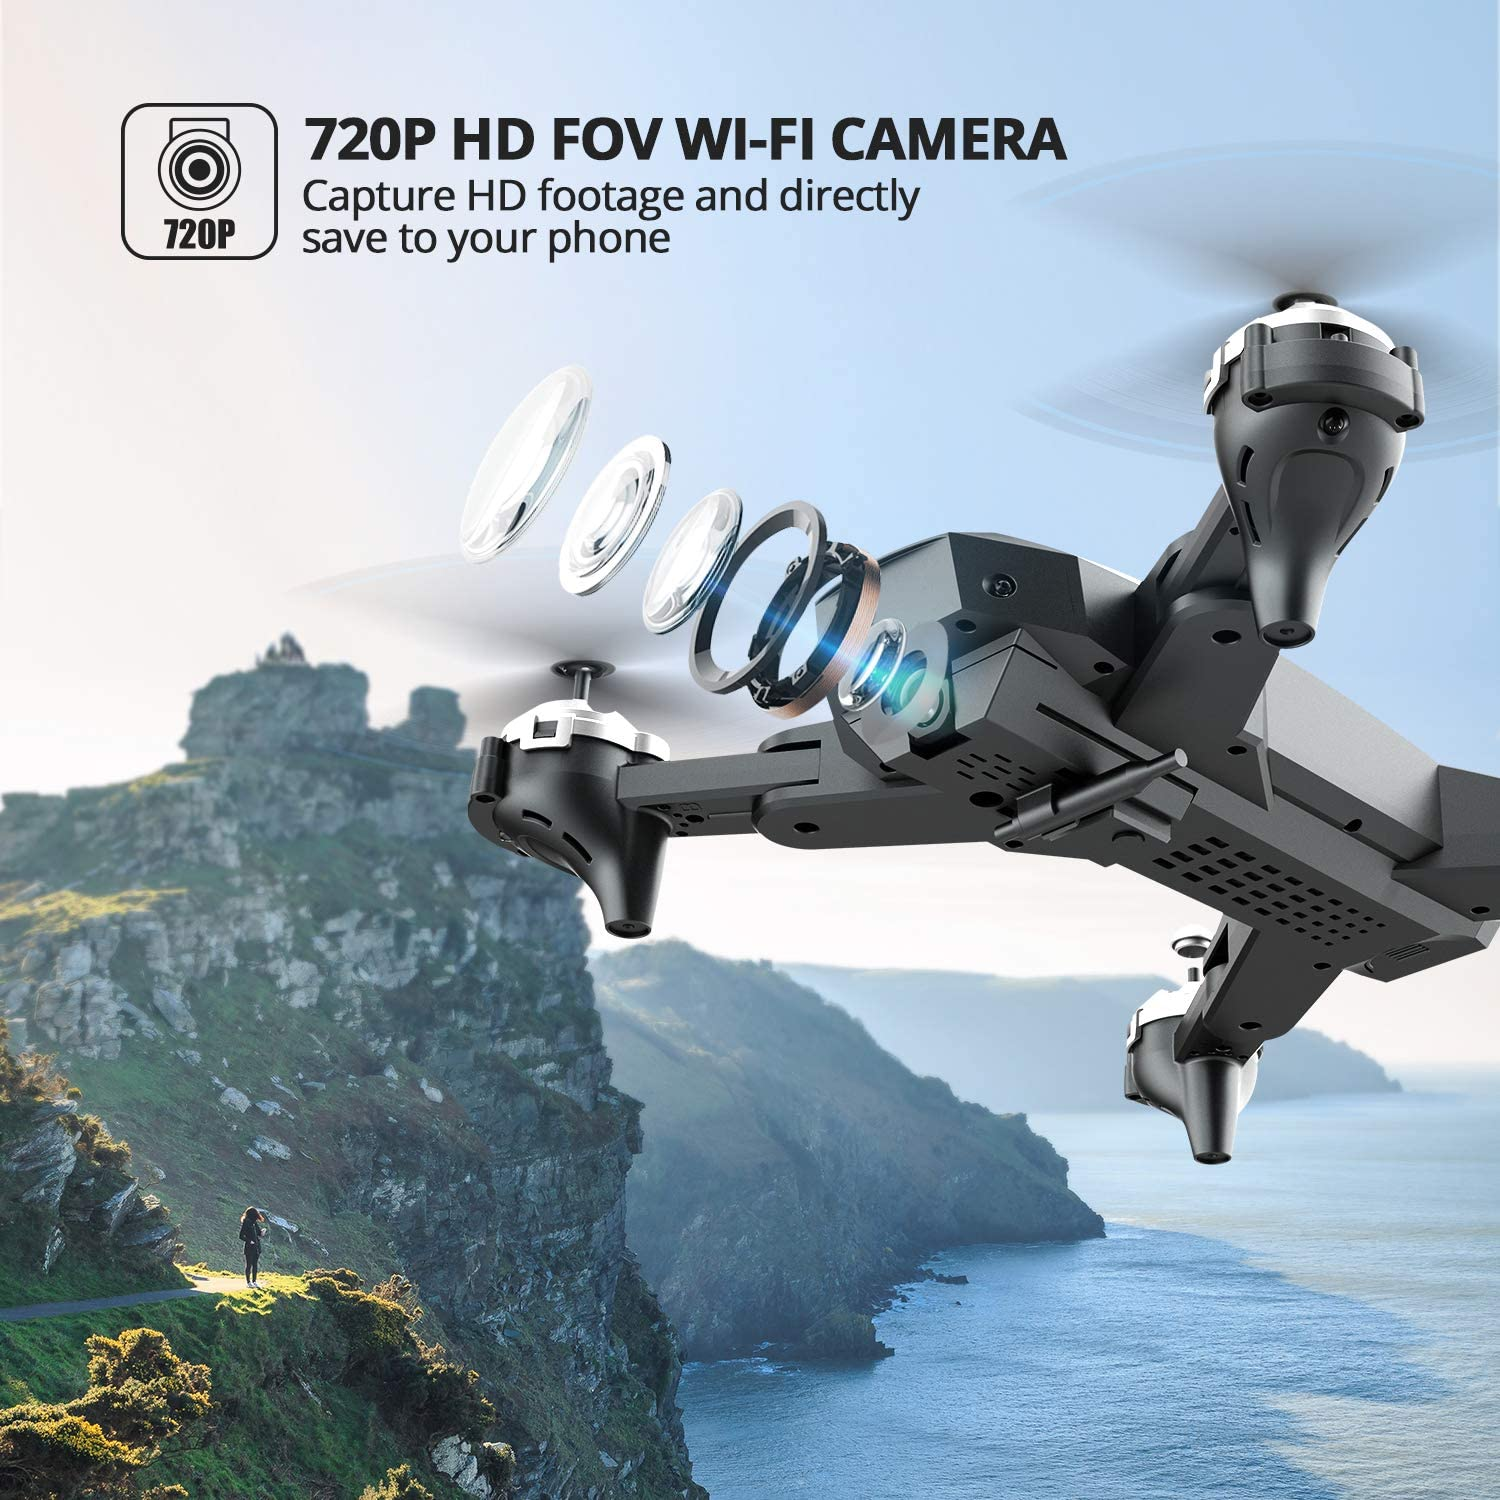 3D Flips Functions and 24mins Long Flight DEERC Drone with Camera 720P HD WiFi FPV for Kids and Adults Foldable RC Qudcopter with Altitude Hold Headless Mode Waypoint Fly App Control